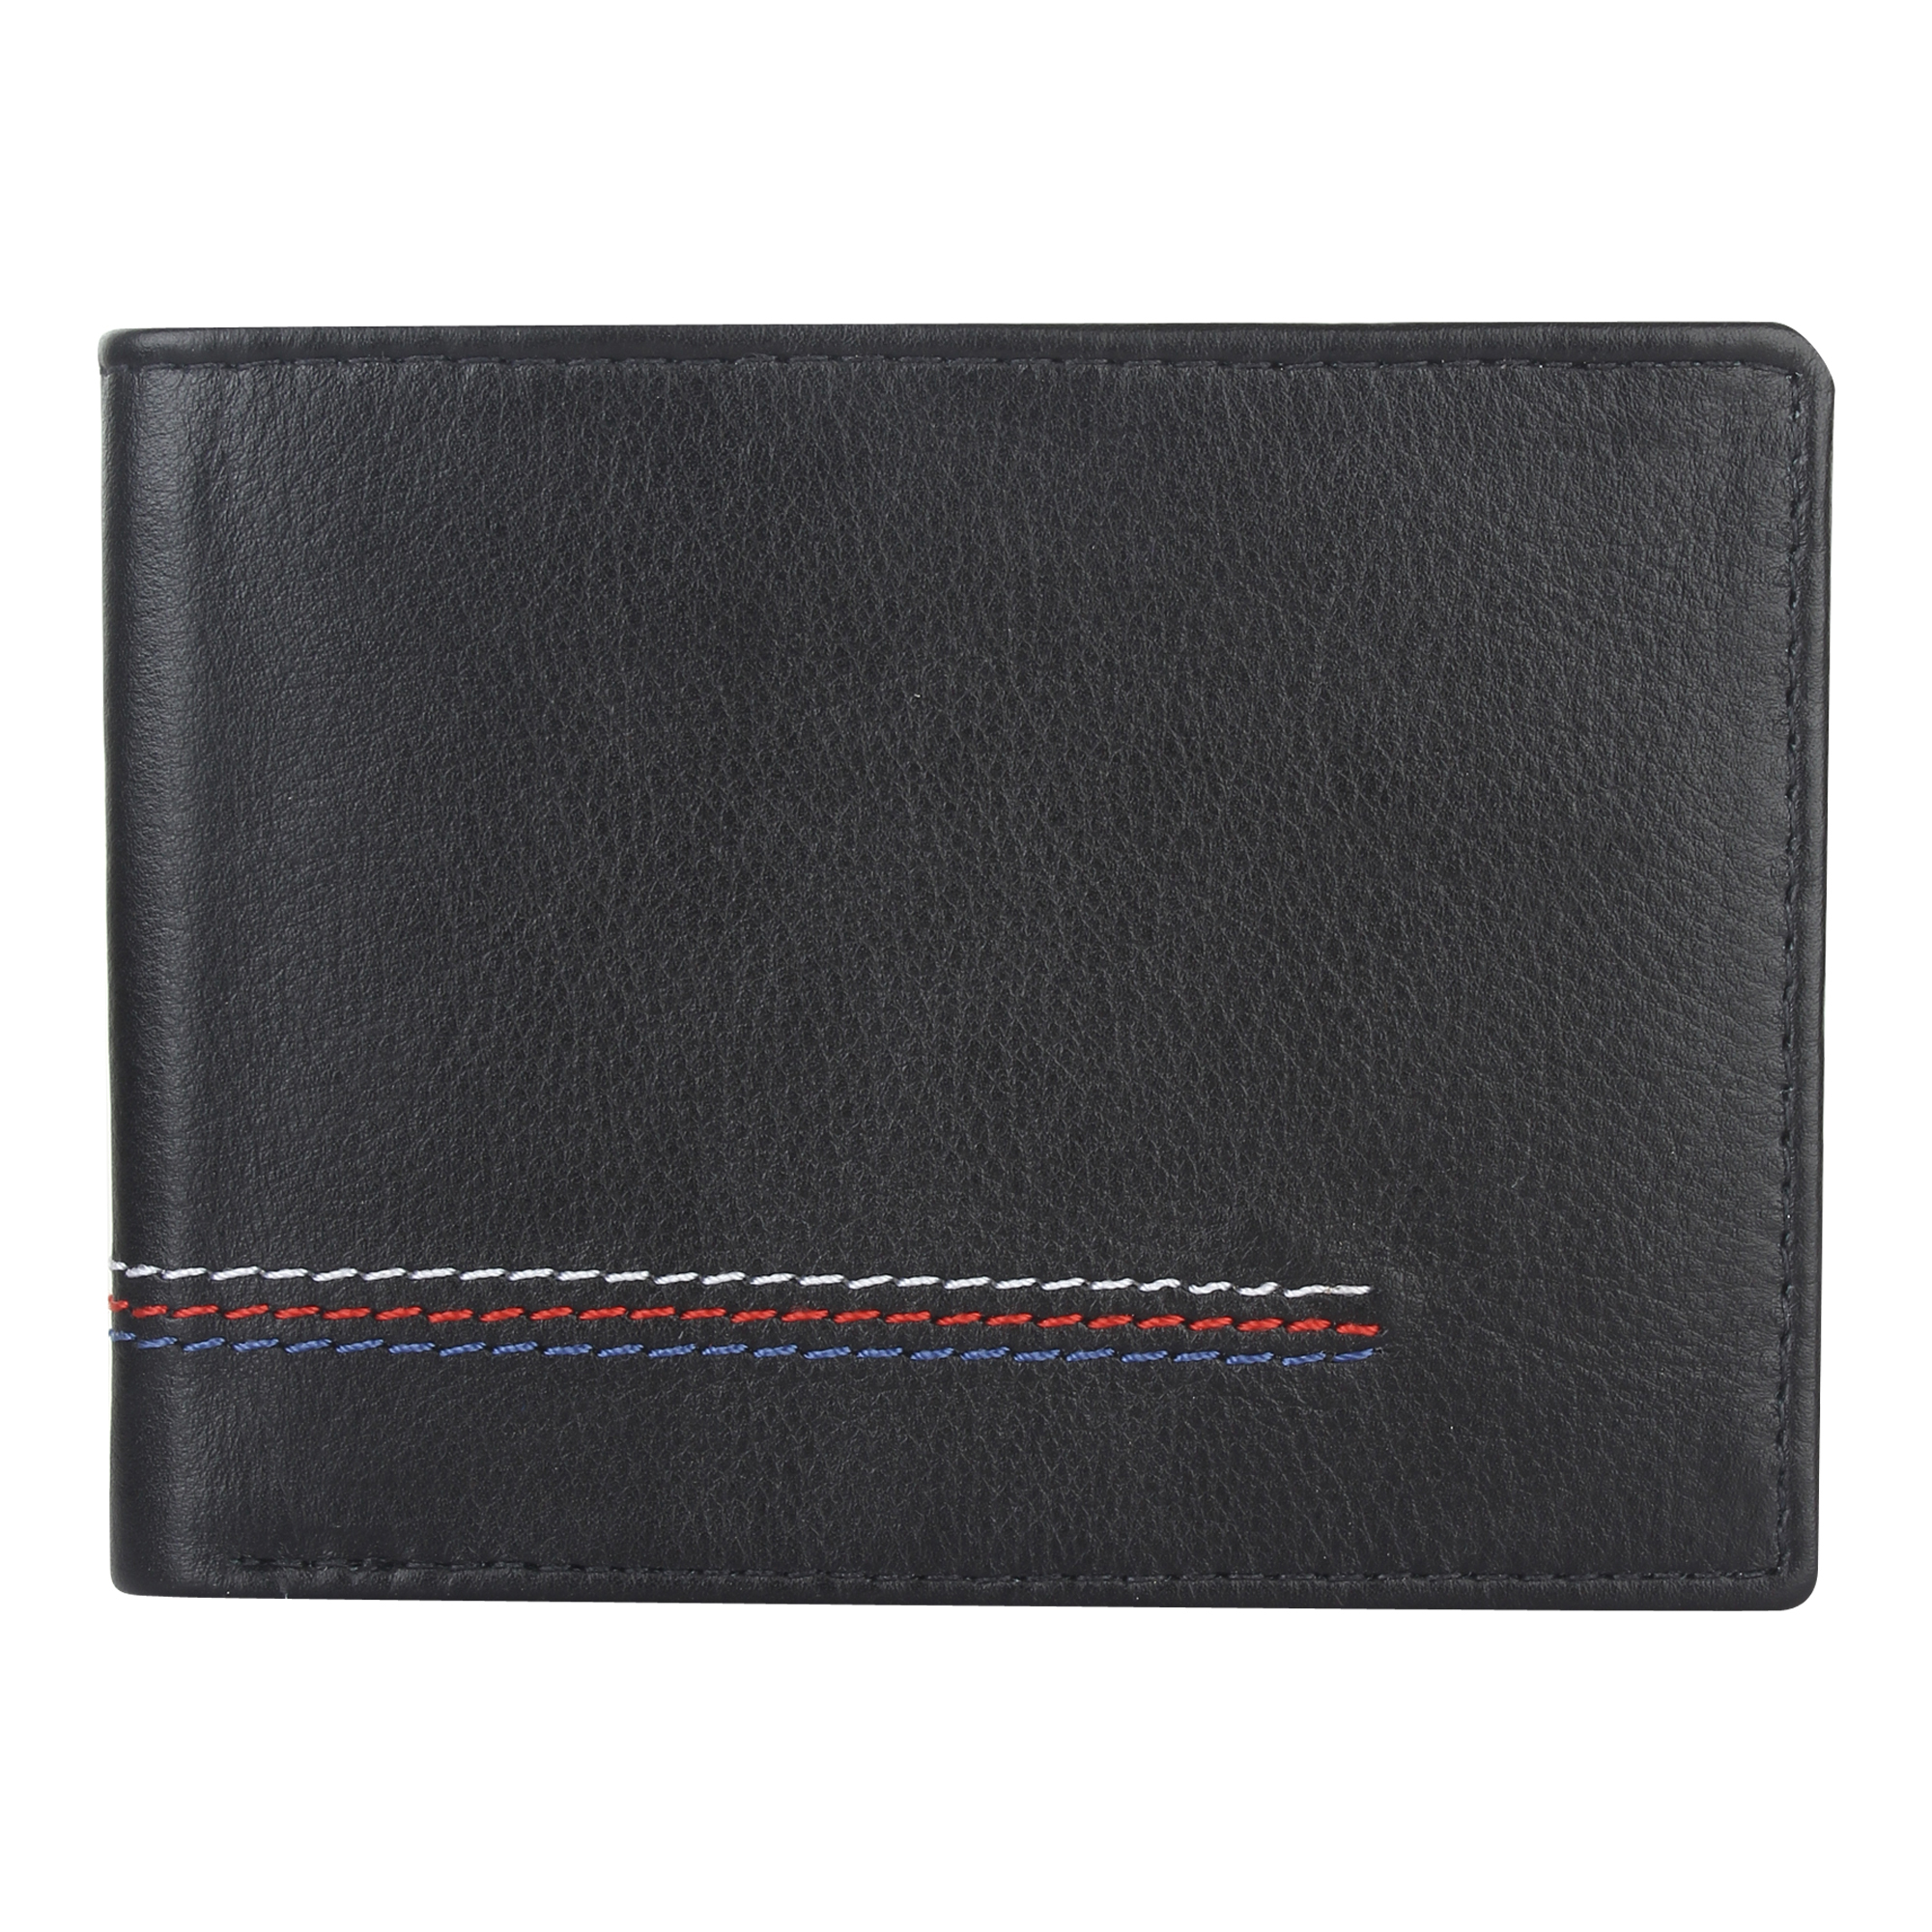 Leather Wallets Manufacturers in Kolkata, Leather Wallets Suppliers in Kolkata, Leather Wallets Wholesalers in Kolkata, Leather Wallets Traders in Kolkata, custom leather wallet manufacturers in Kolkata, Leathe